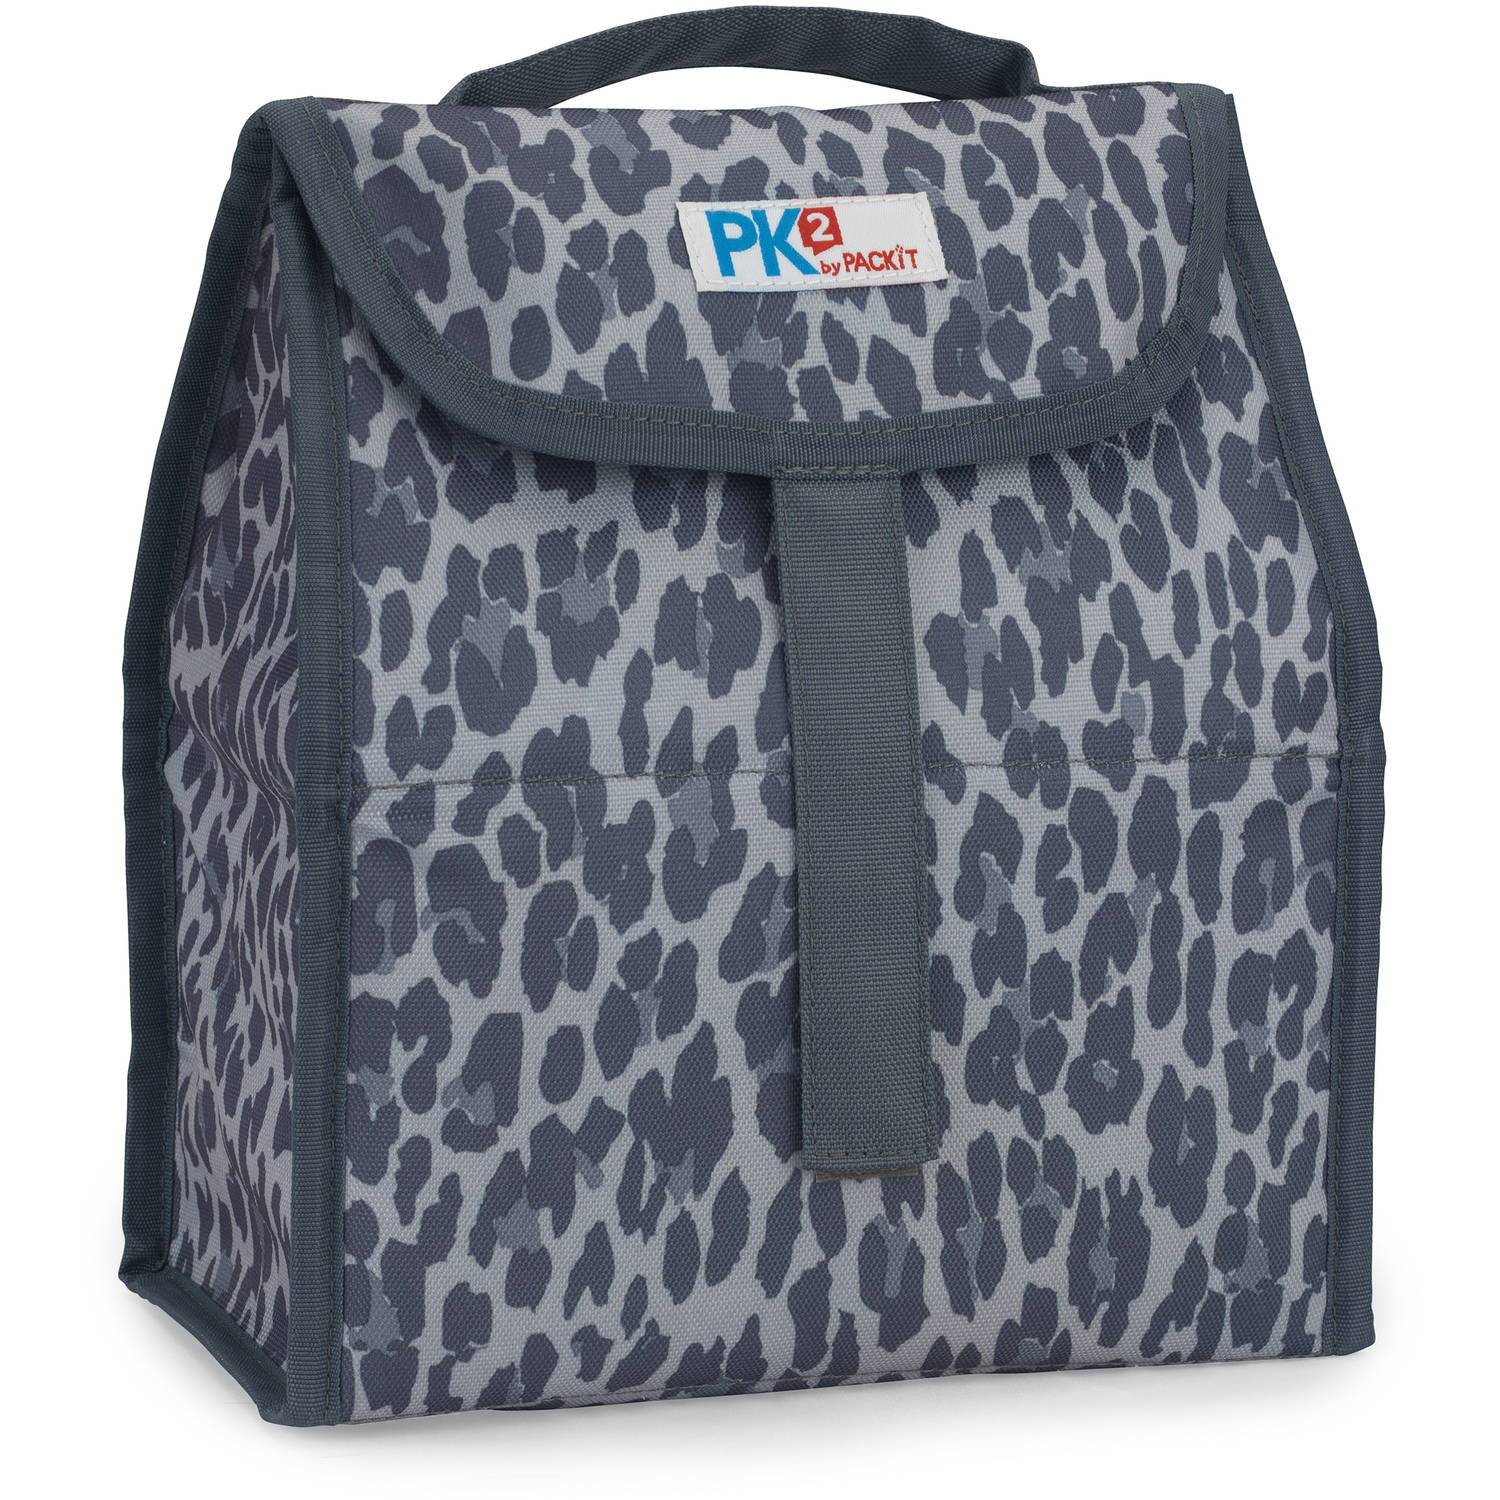 PackIt PK2 Lunch Sack, Cheetah Gray